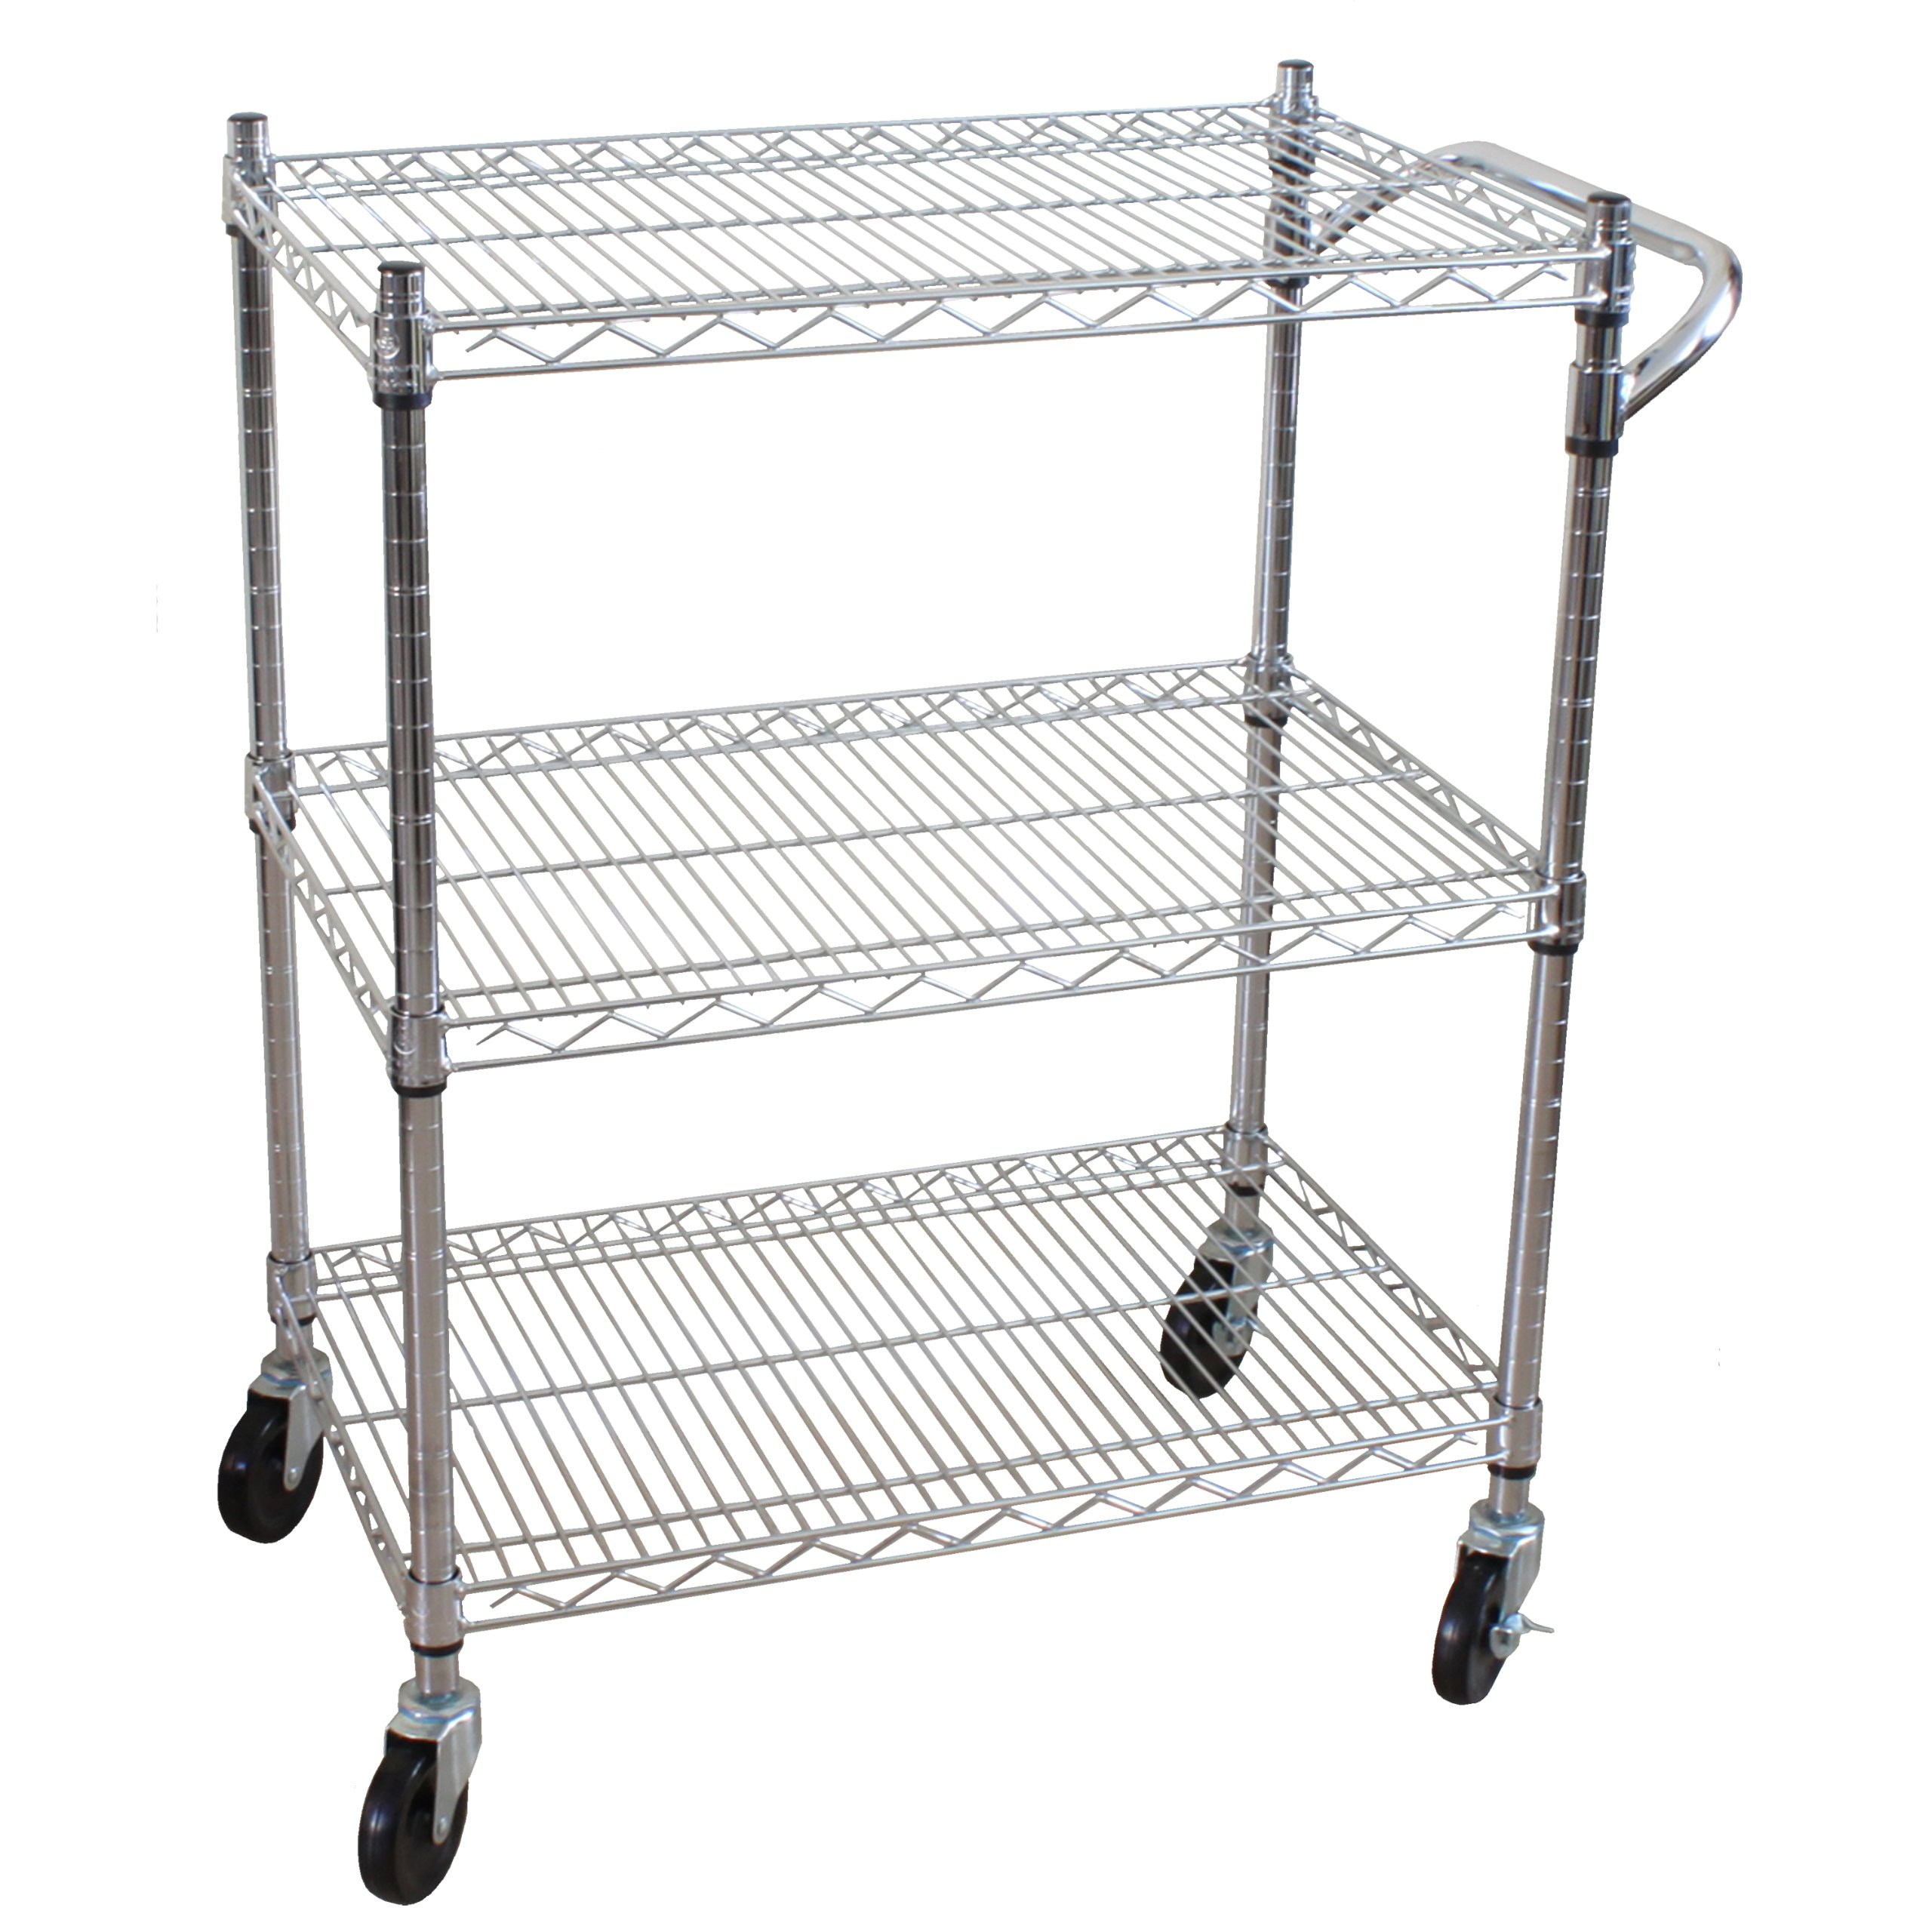 Oceanstar 3-Tier Heavy Duty All-Purpose Utility Cart, Chrome by Oceanstar